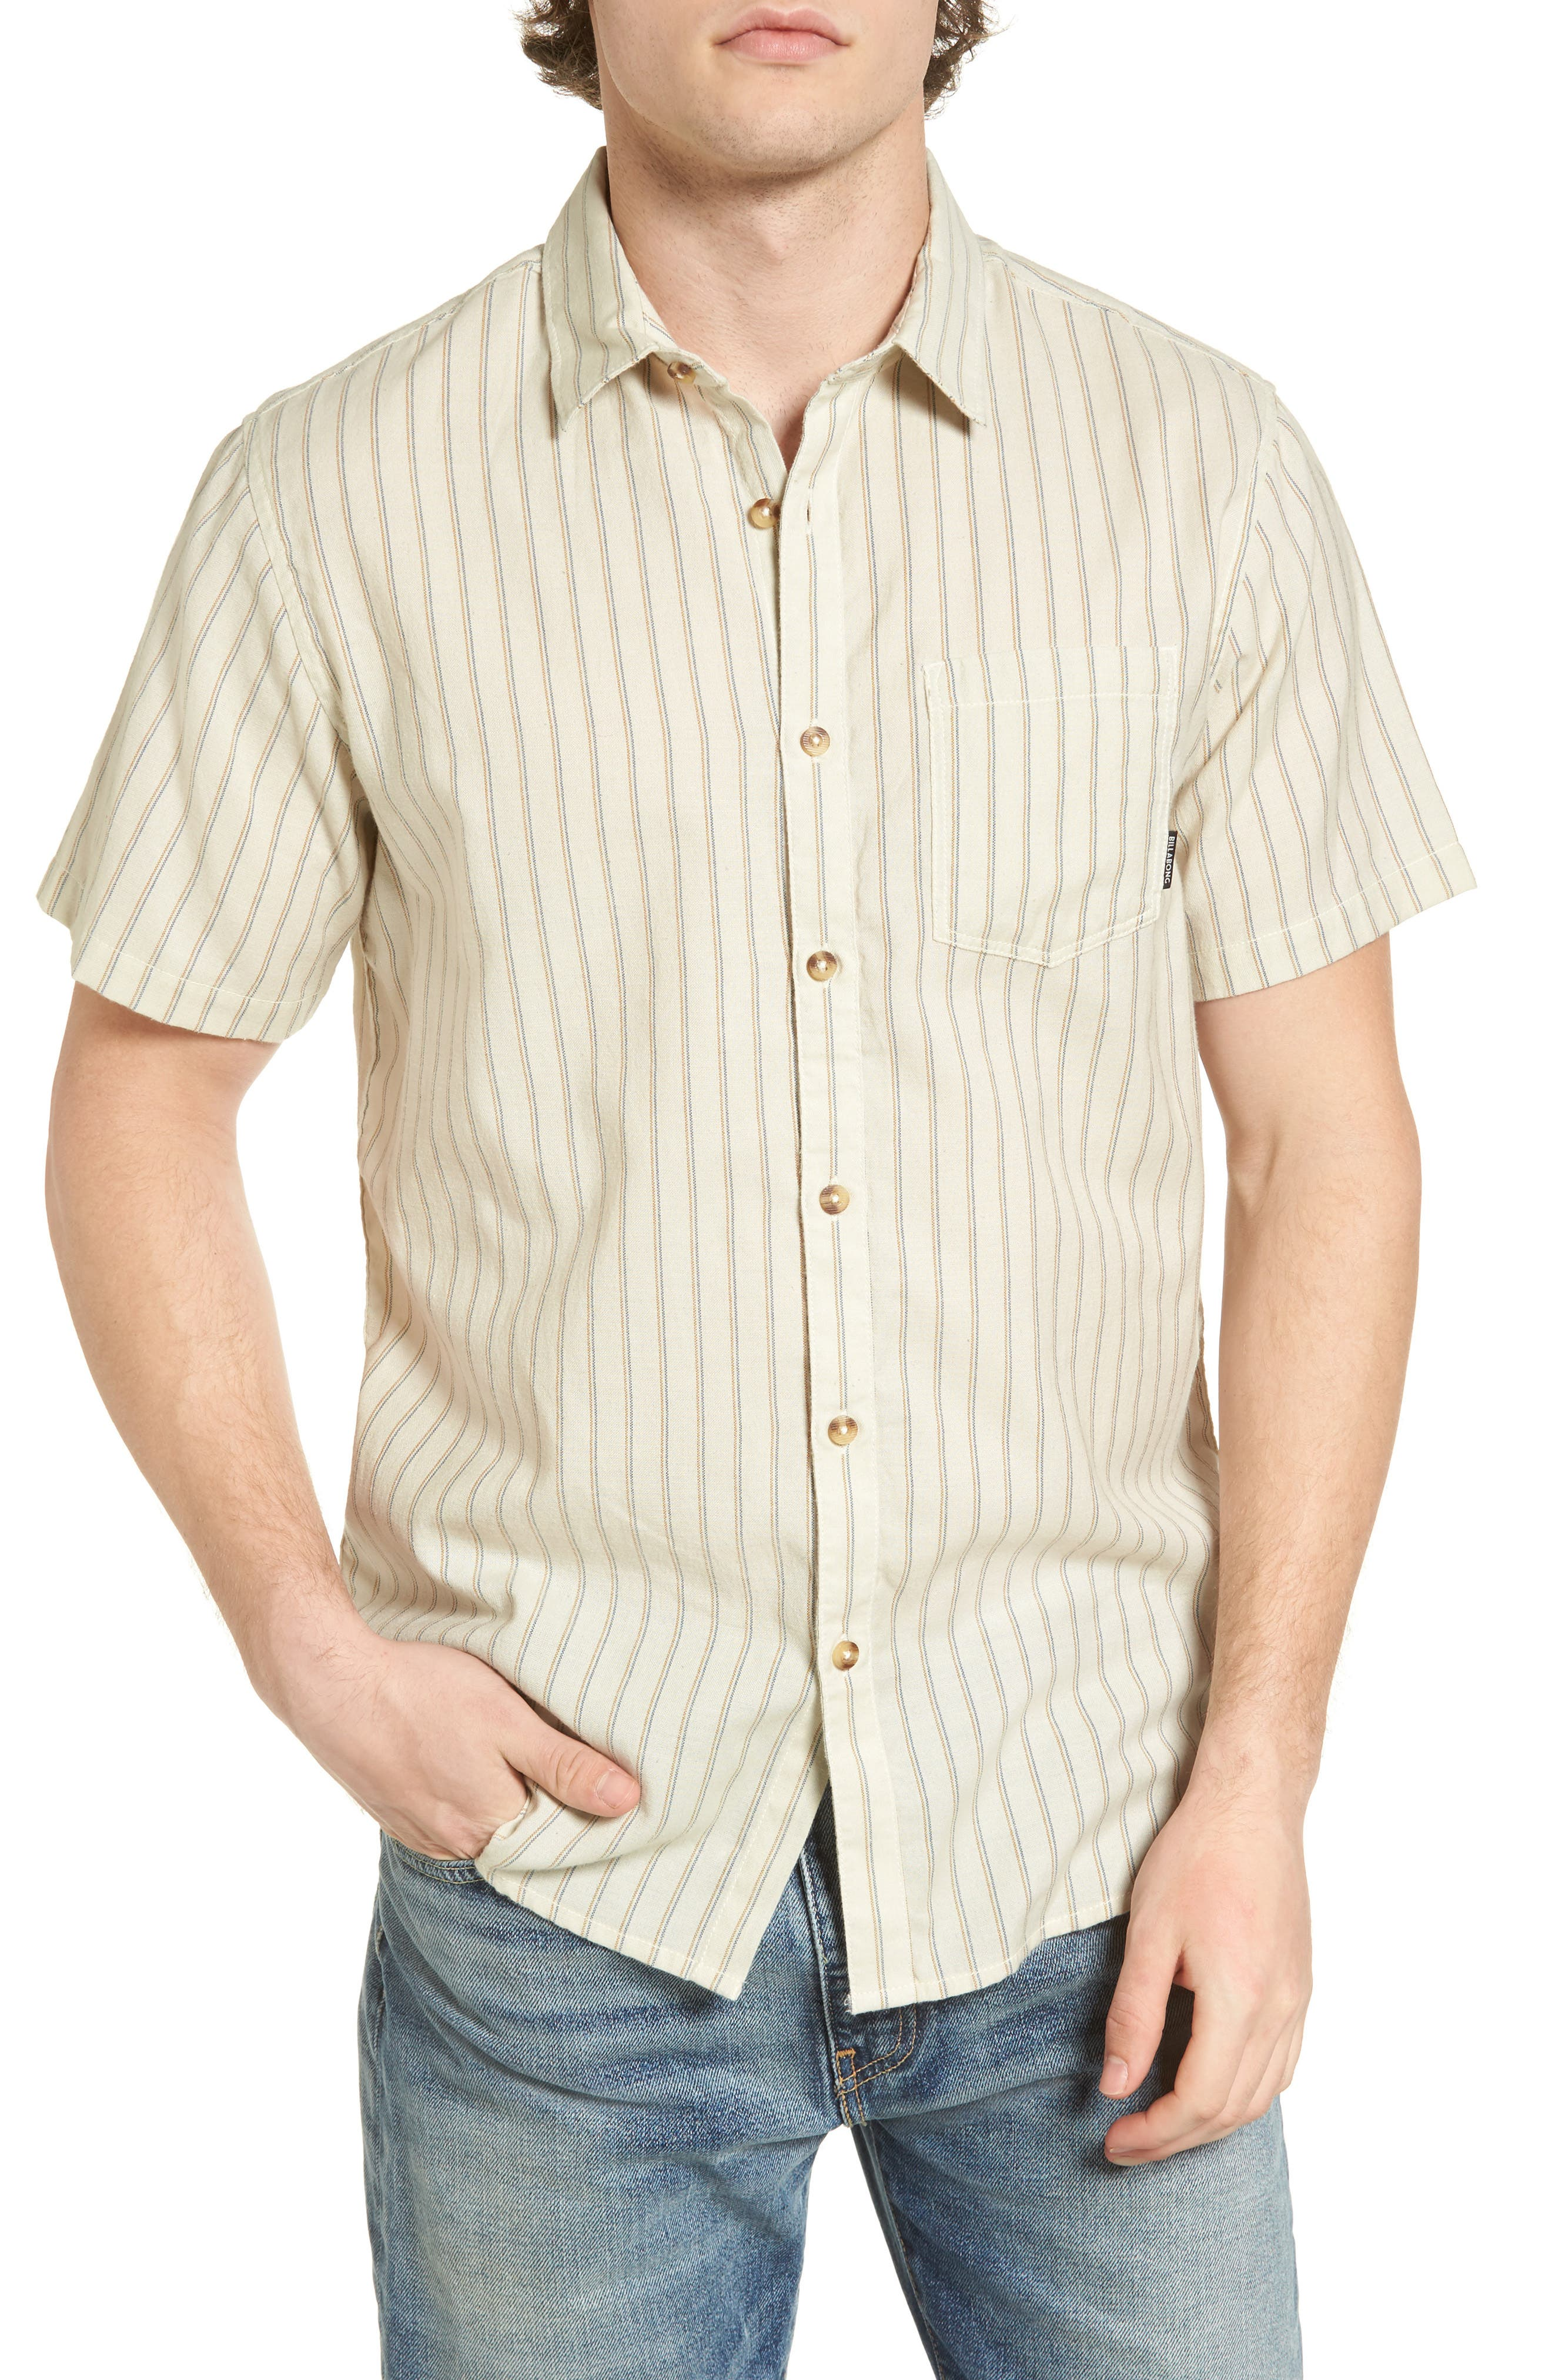 Kelso Tailored Fit Stripe Shirt,                             Main thumbnail 1, color,